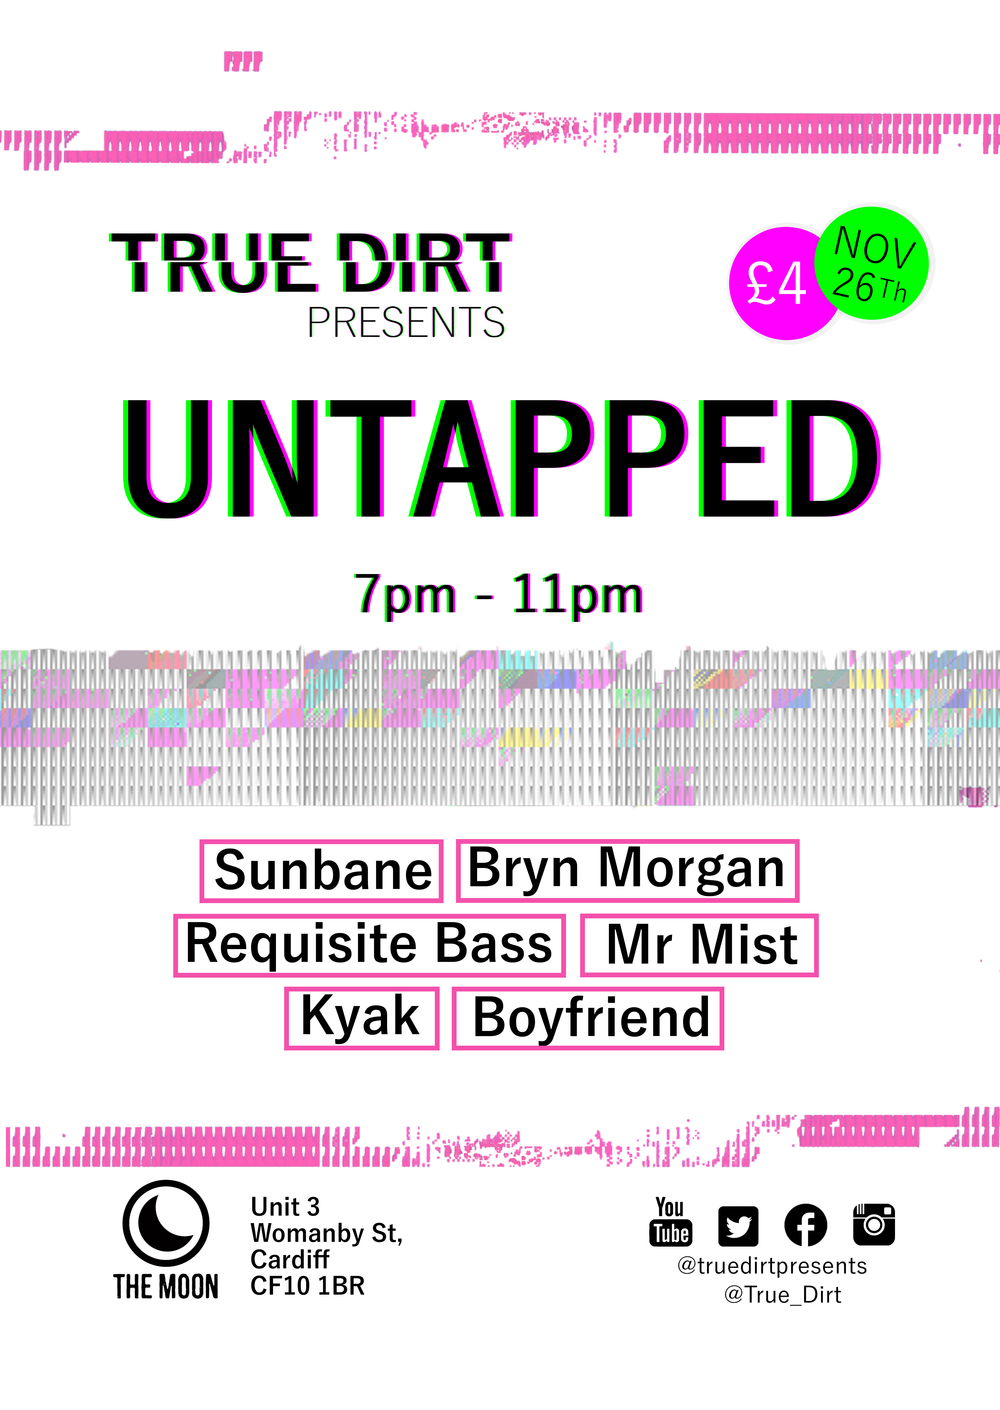 True Dirt presents Untapped